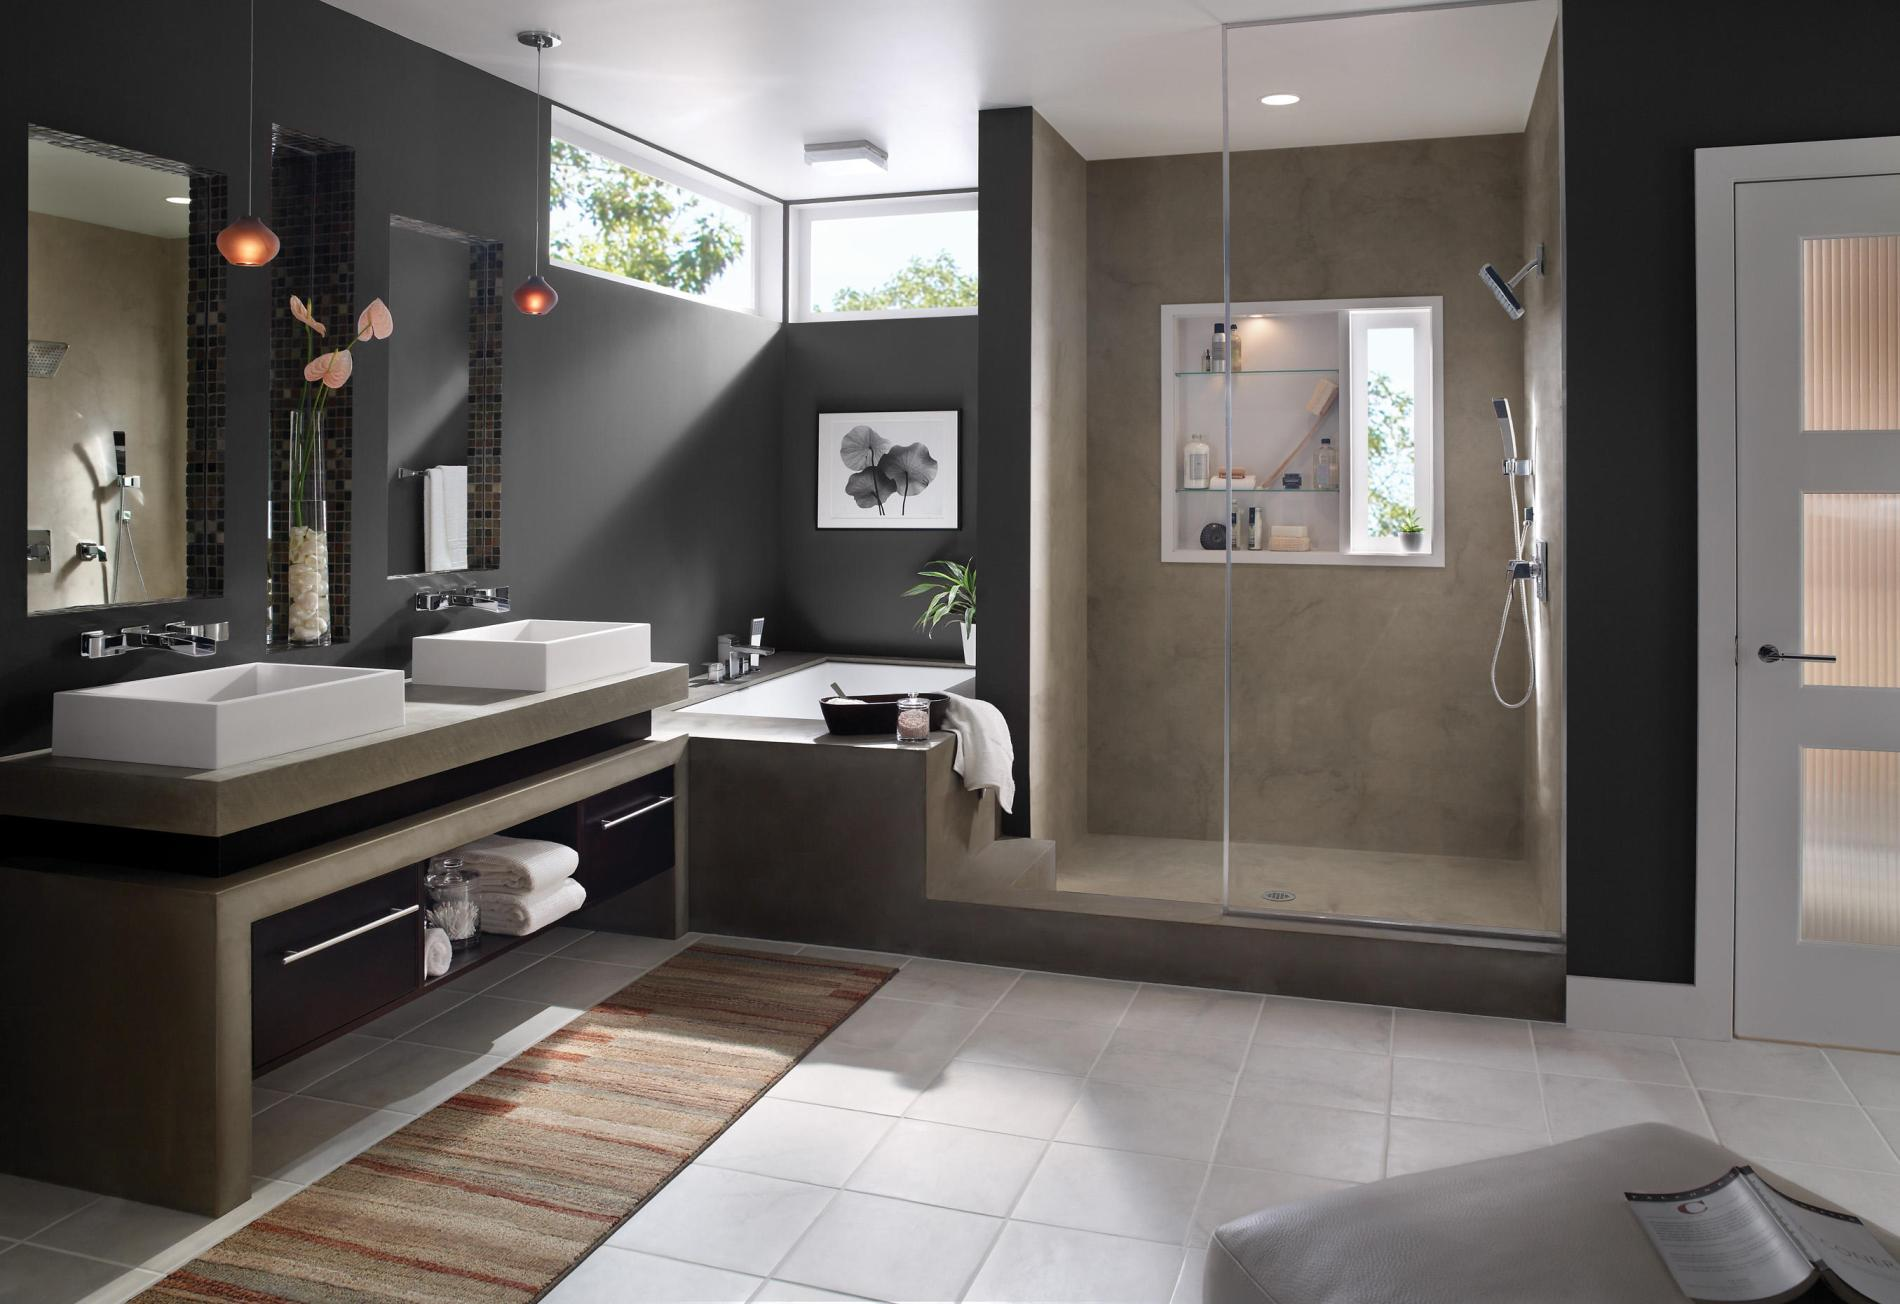 Fabulous Small Bathroom Layouts With Adjoining Bath Vanity Ideas For Bedrooms Bedroom Layout X Designs Master Half Full Piece Shower Only Apppie Org